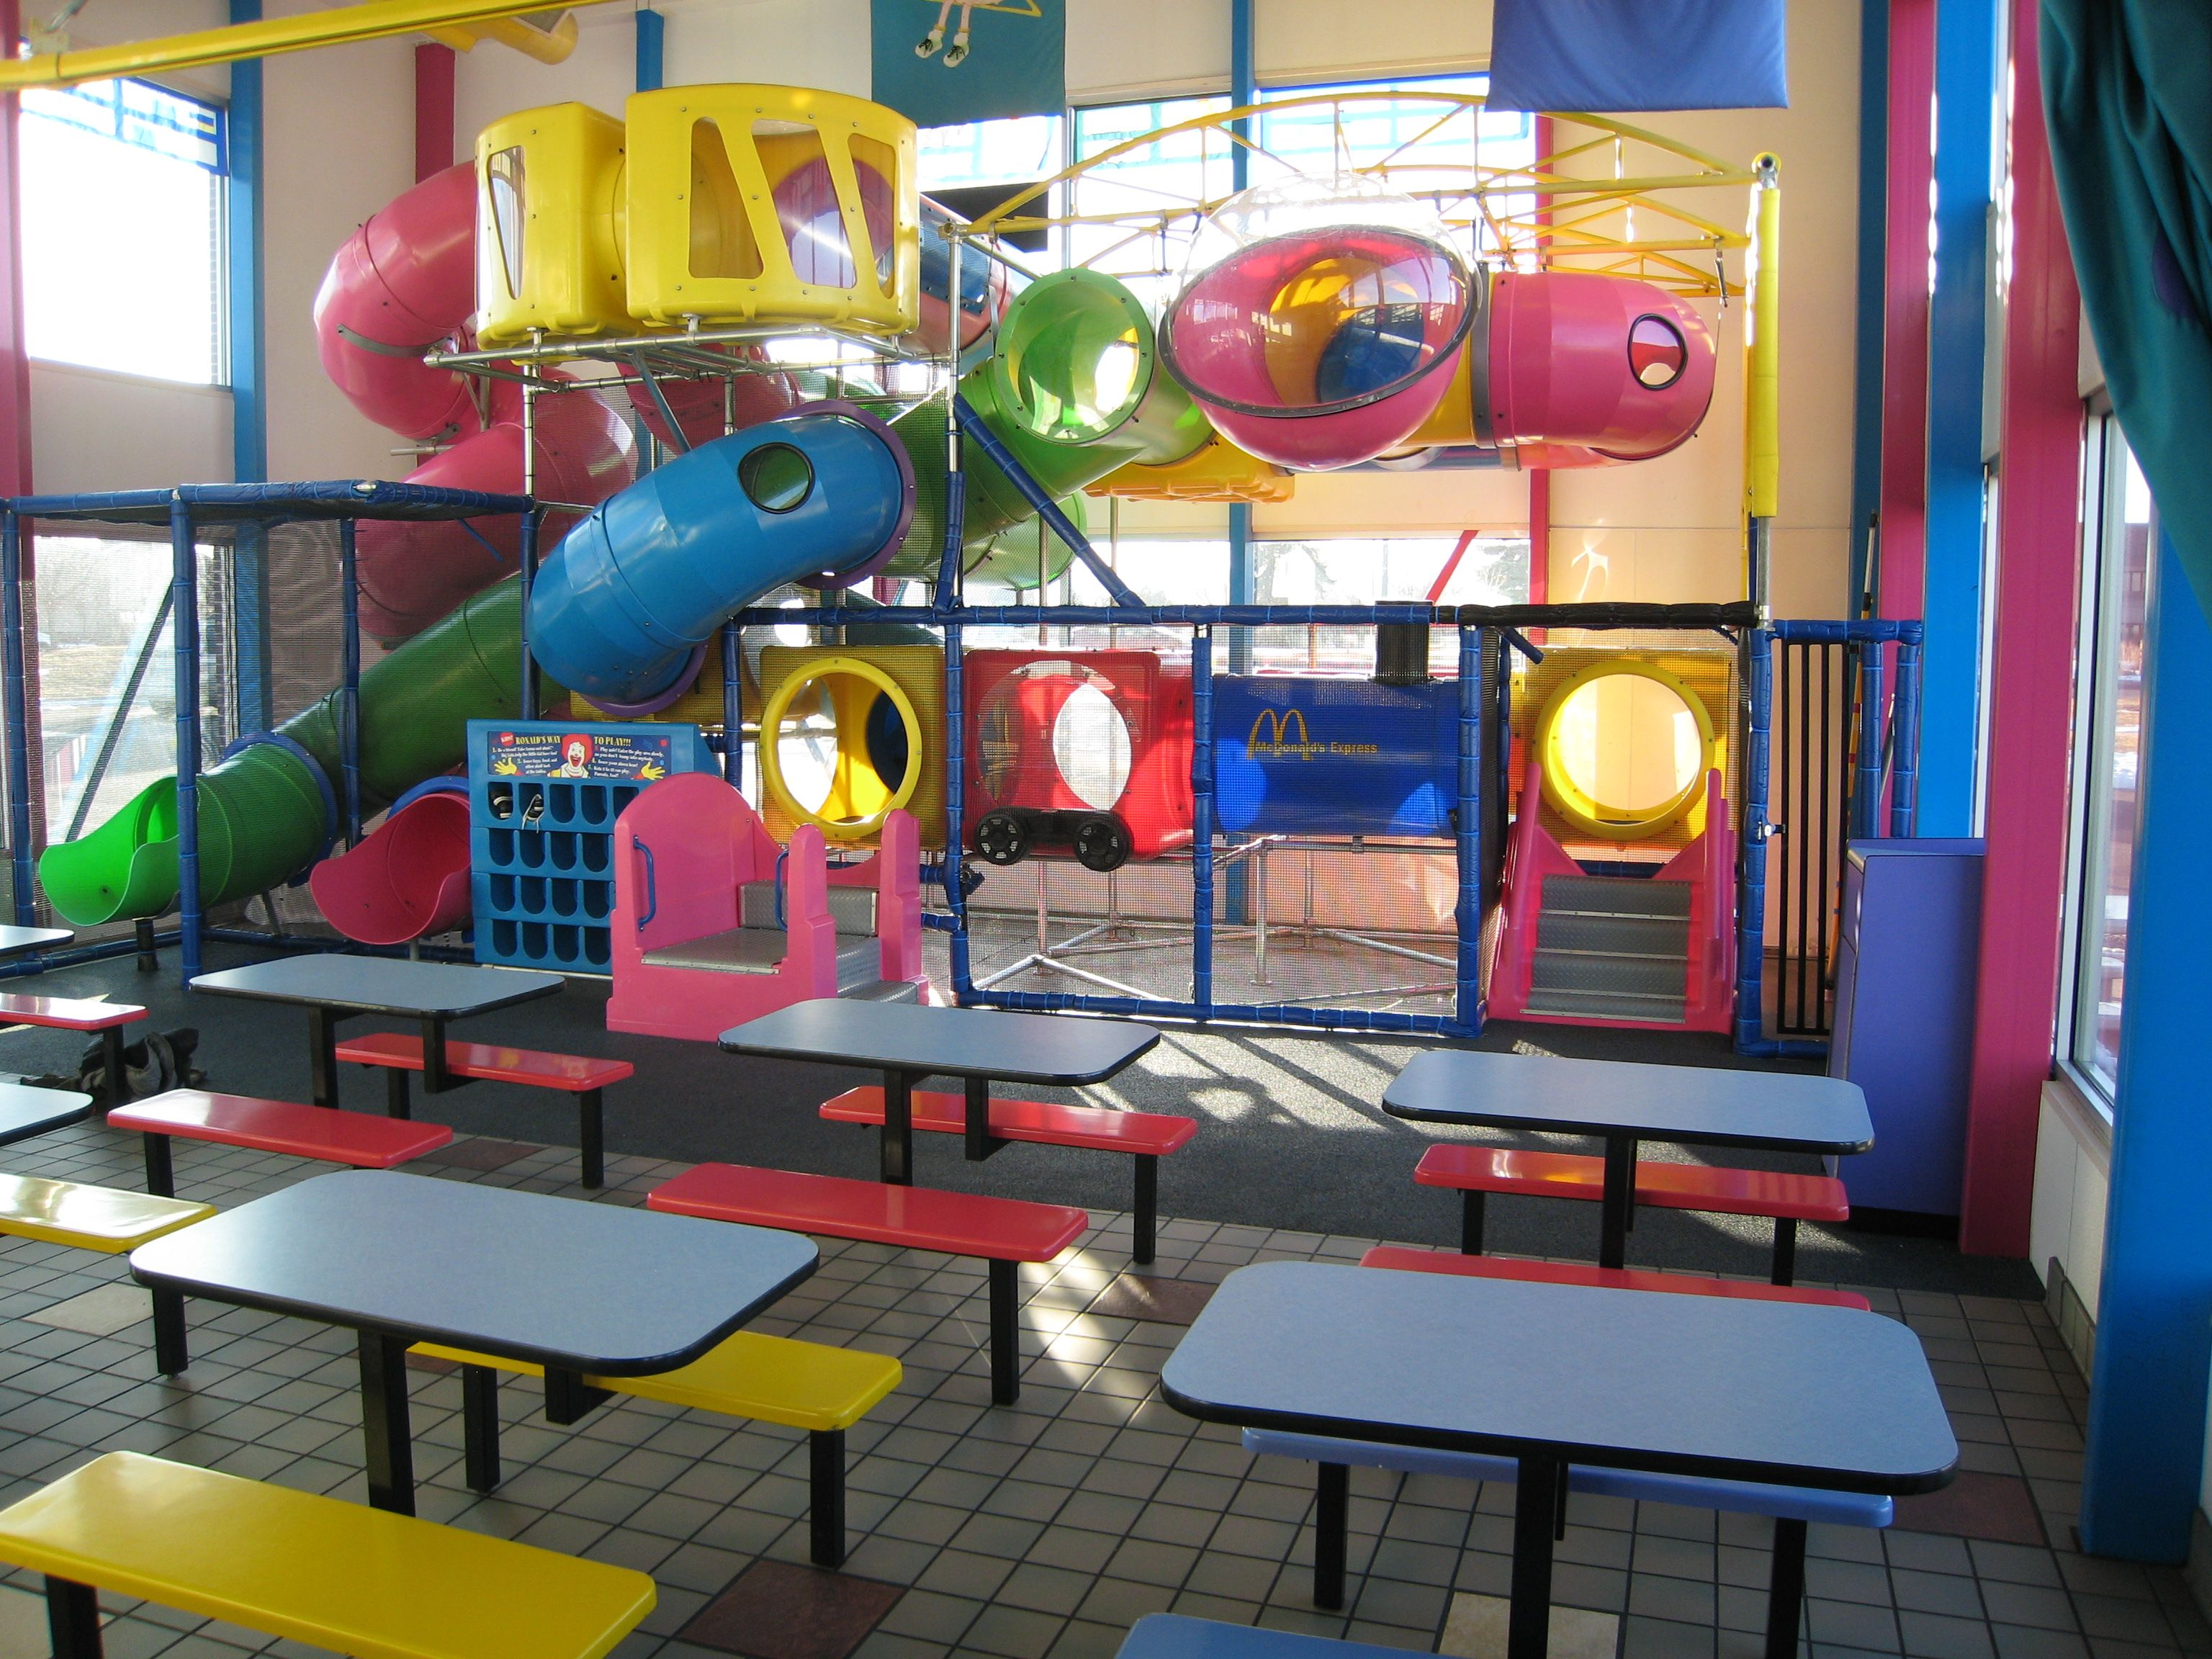 McDonald's Playplace. Instant party. #90s #00s #memories #childhood #fun #food